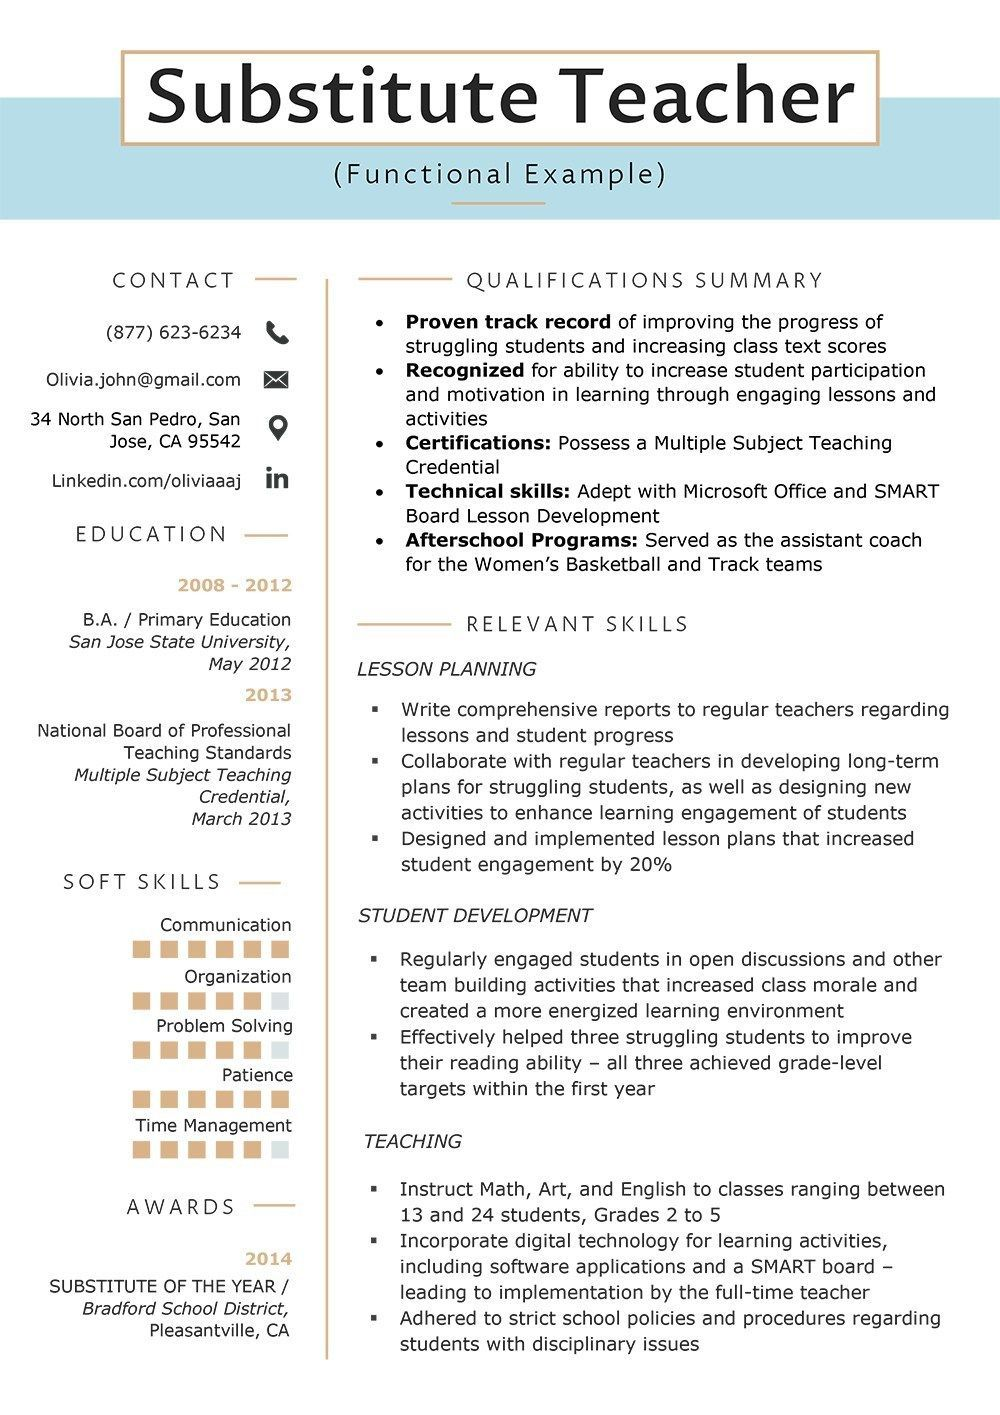 How to write resume tips skills? In a resume, there are